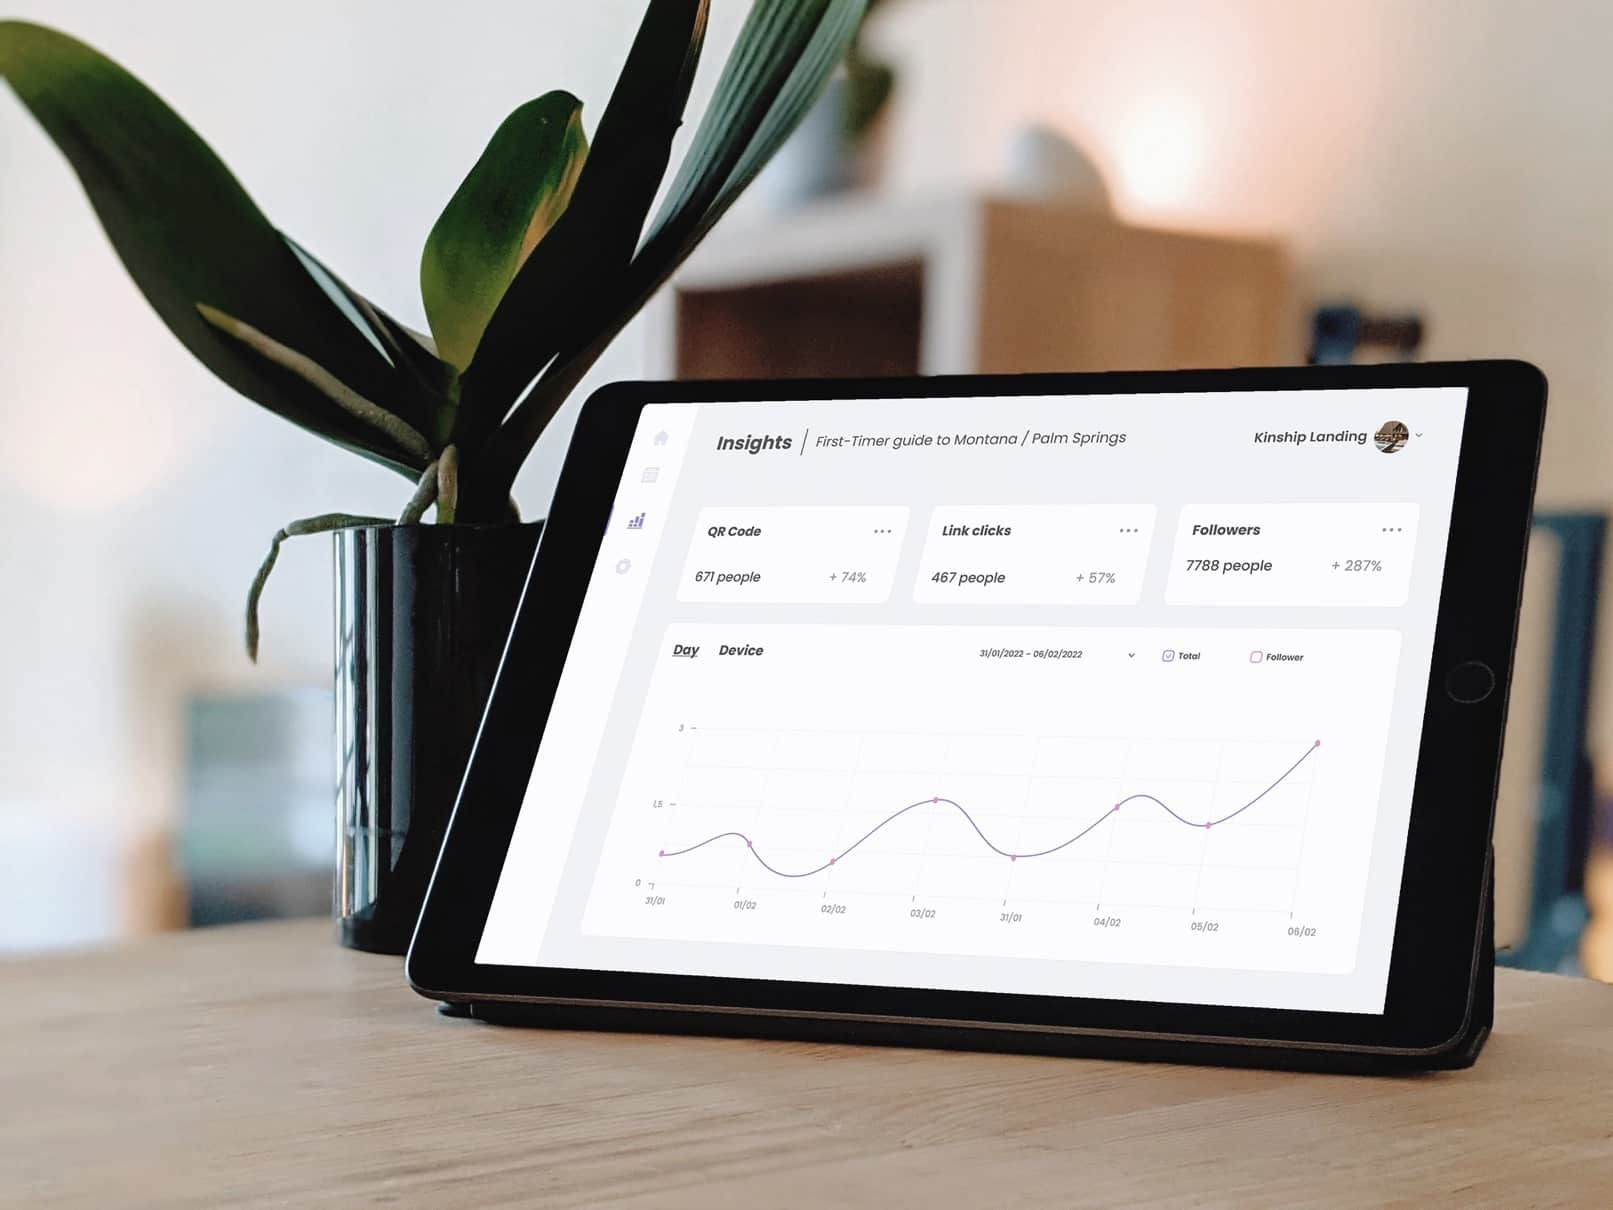 Insight analytics of a hotel dashboard on tablet